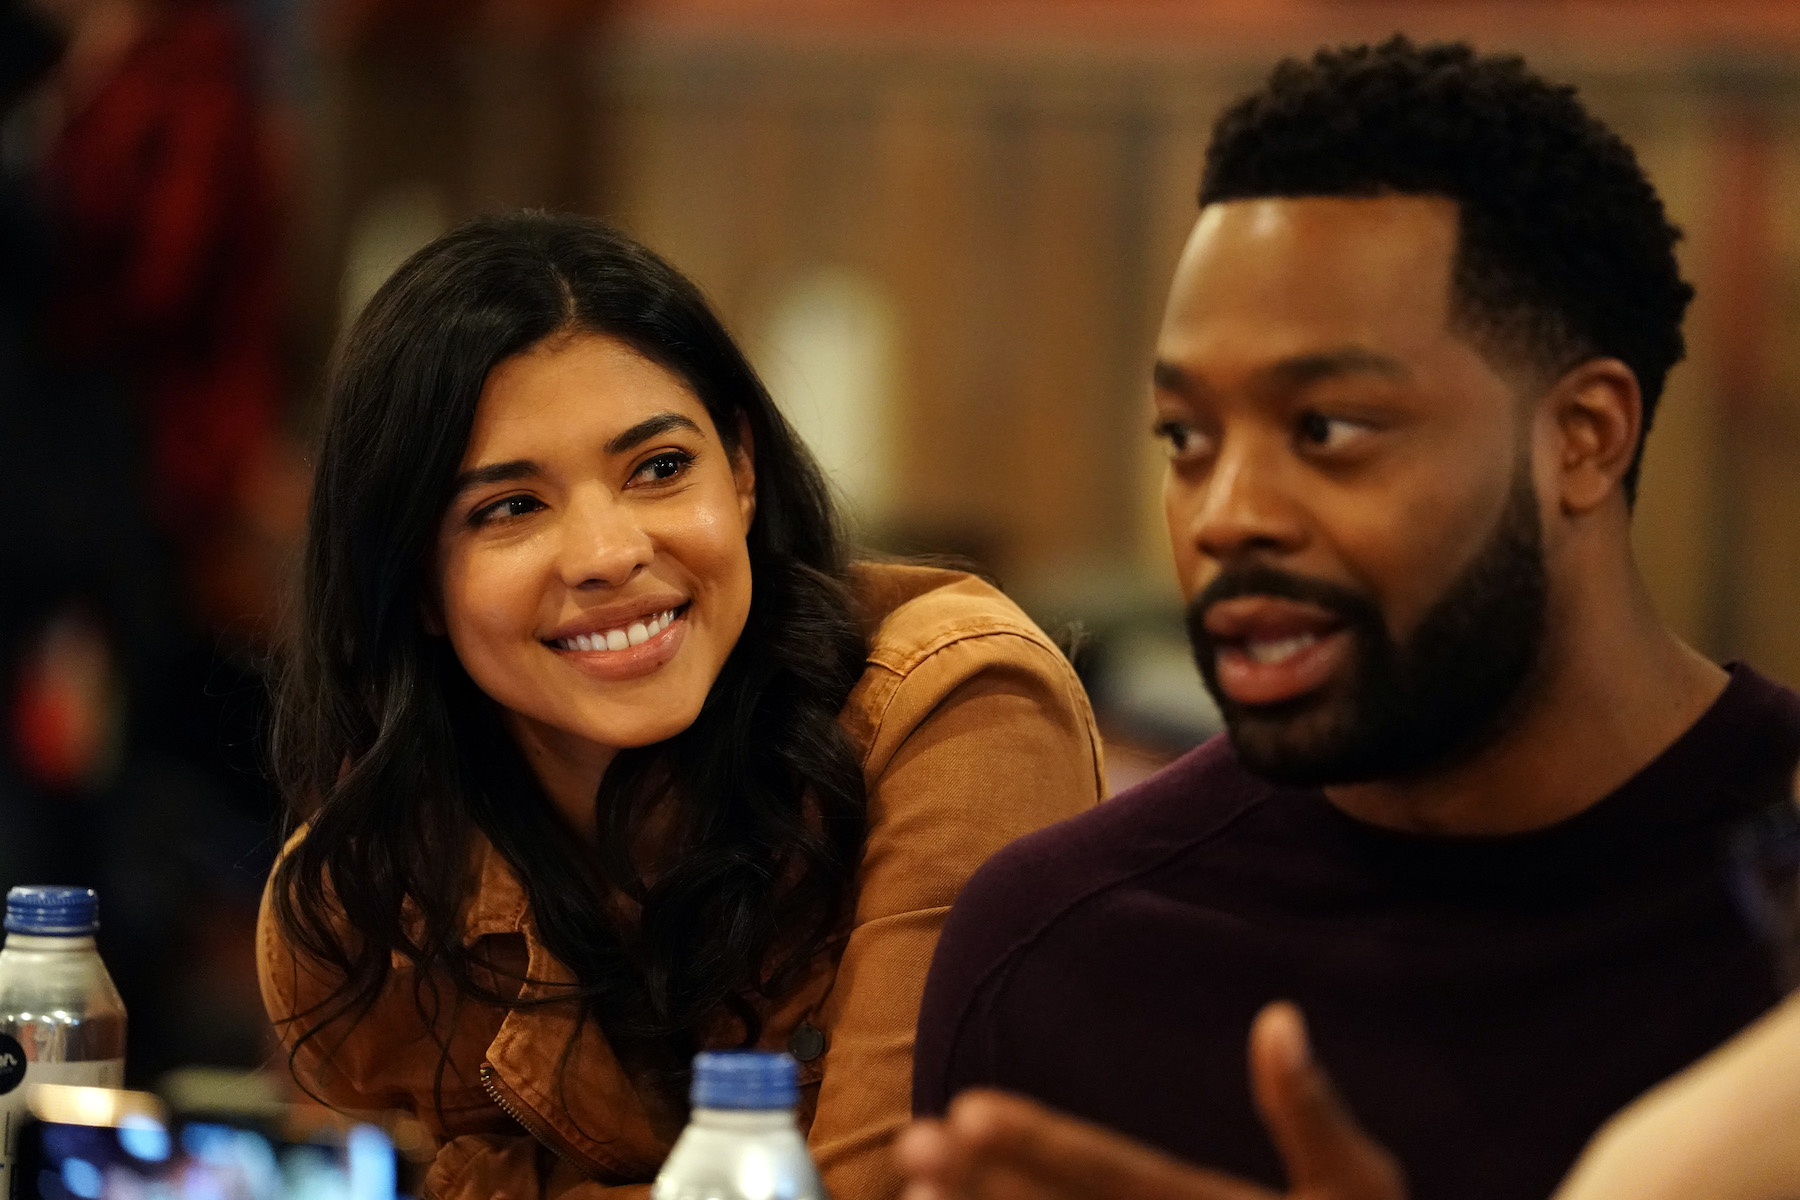 Lisseth Chavez and LaRoyce Hawkins of `Chicago P.D.` at `One Chicago Day` at Lagunitas Brewing Company in Chicago. (NBC photo by Elizabeth Morris)